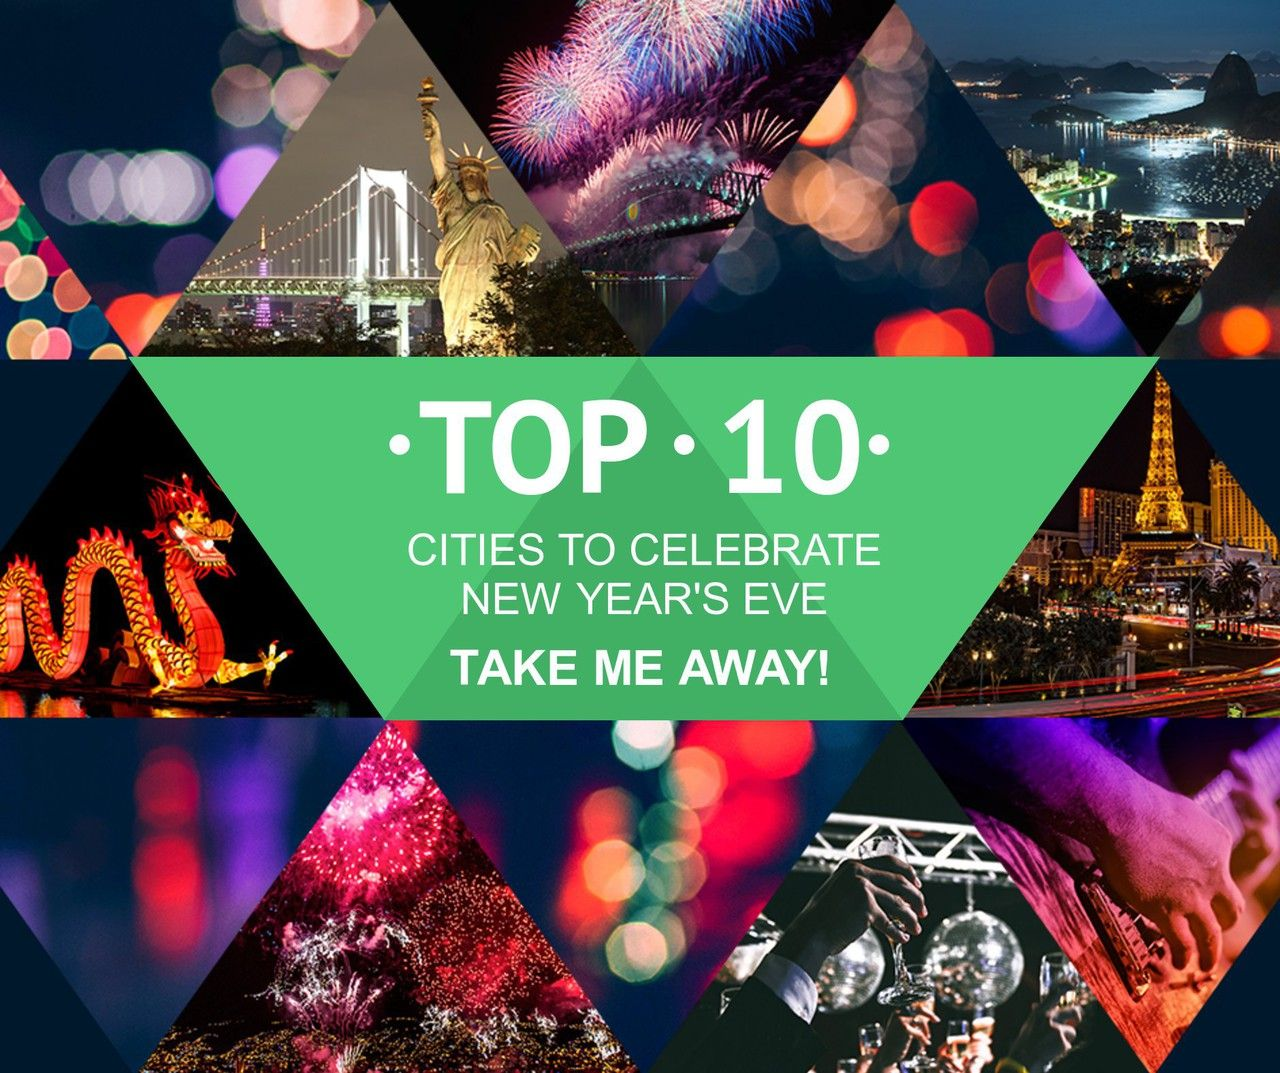 Have you celebrated in any of the top 10? 1. New York City